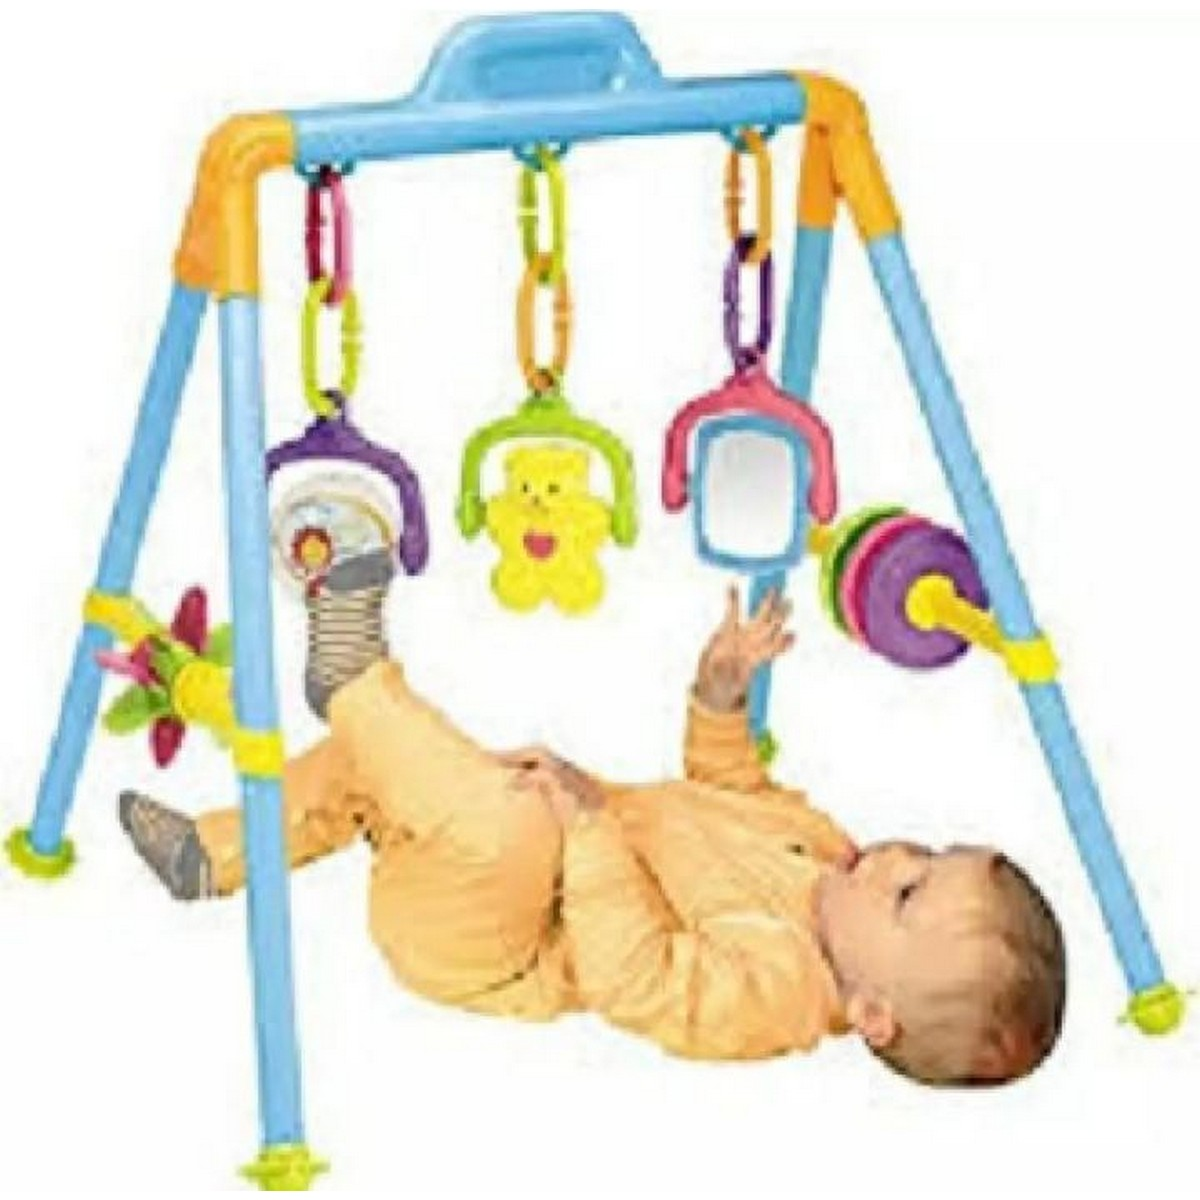 Baby Rattle Activity Play Gym